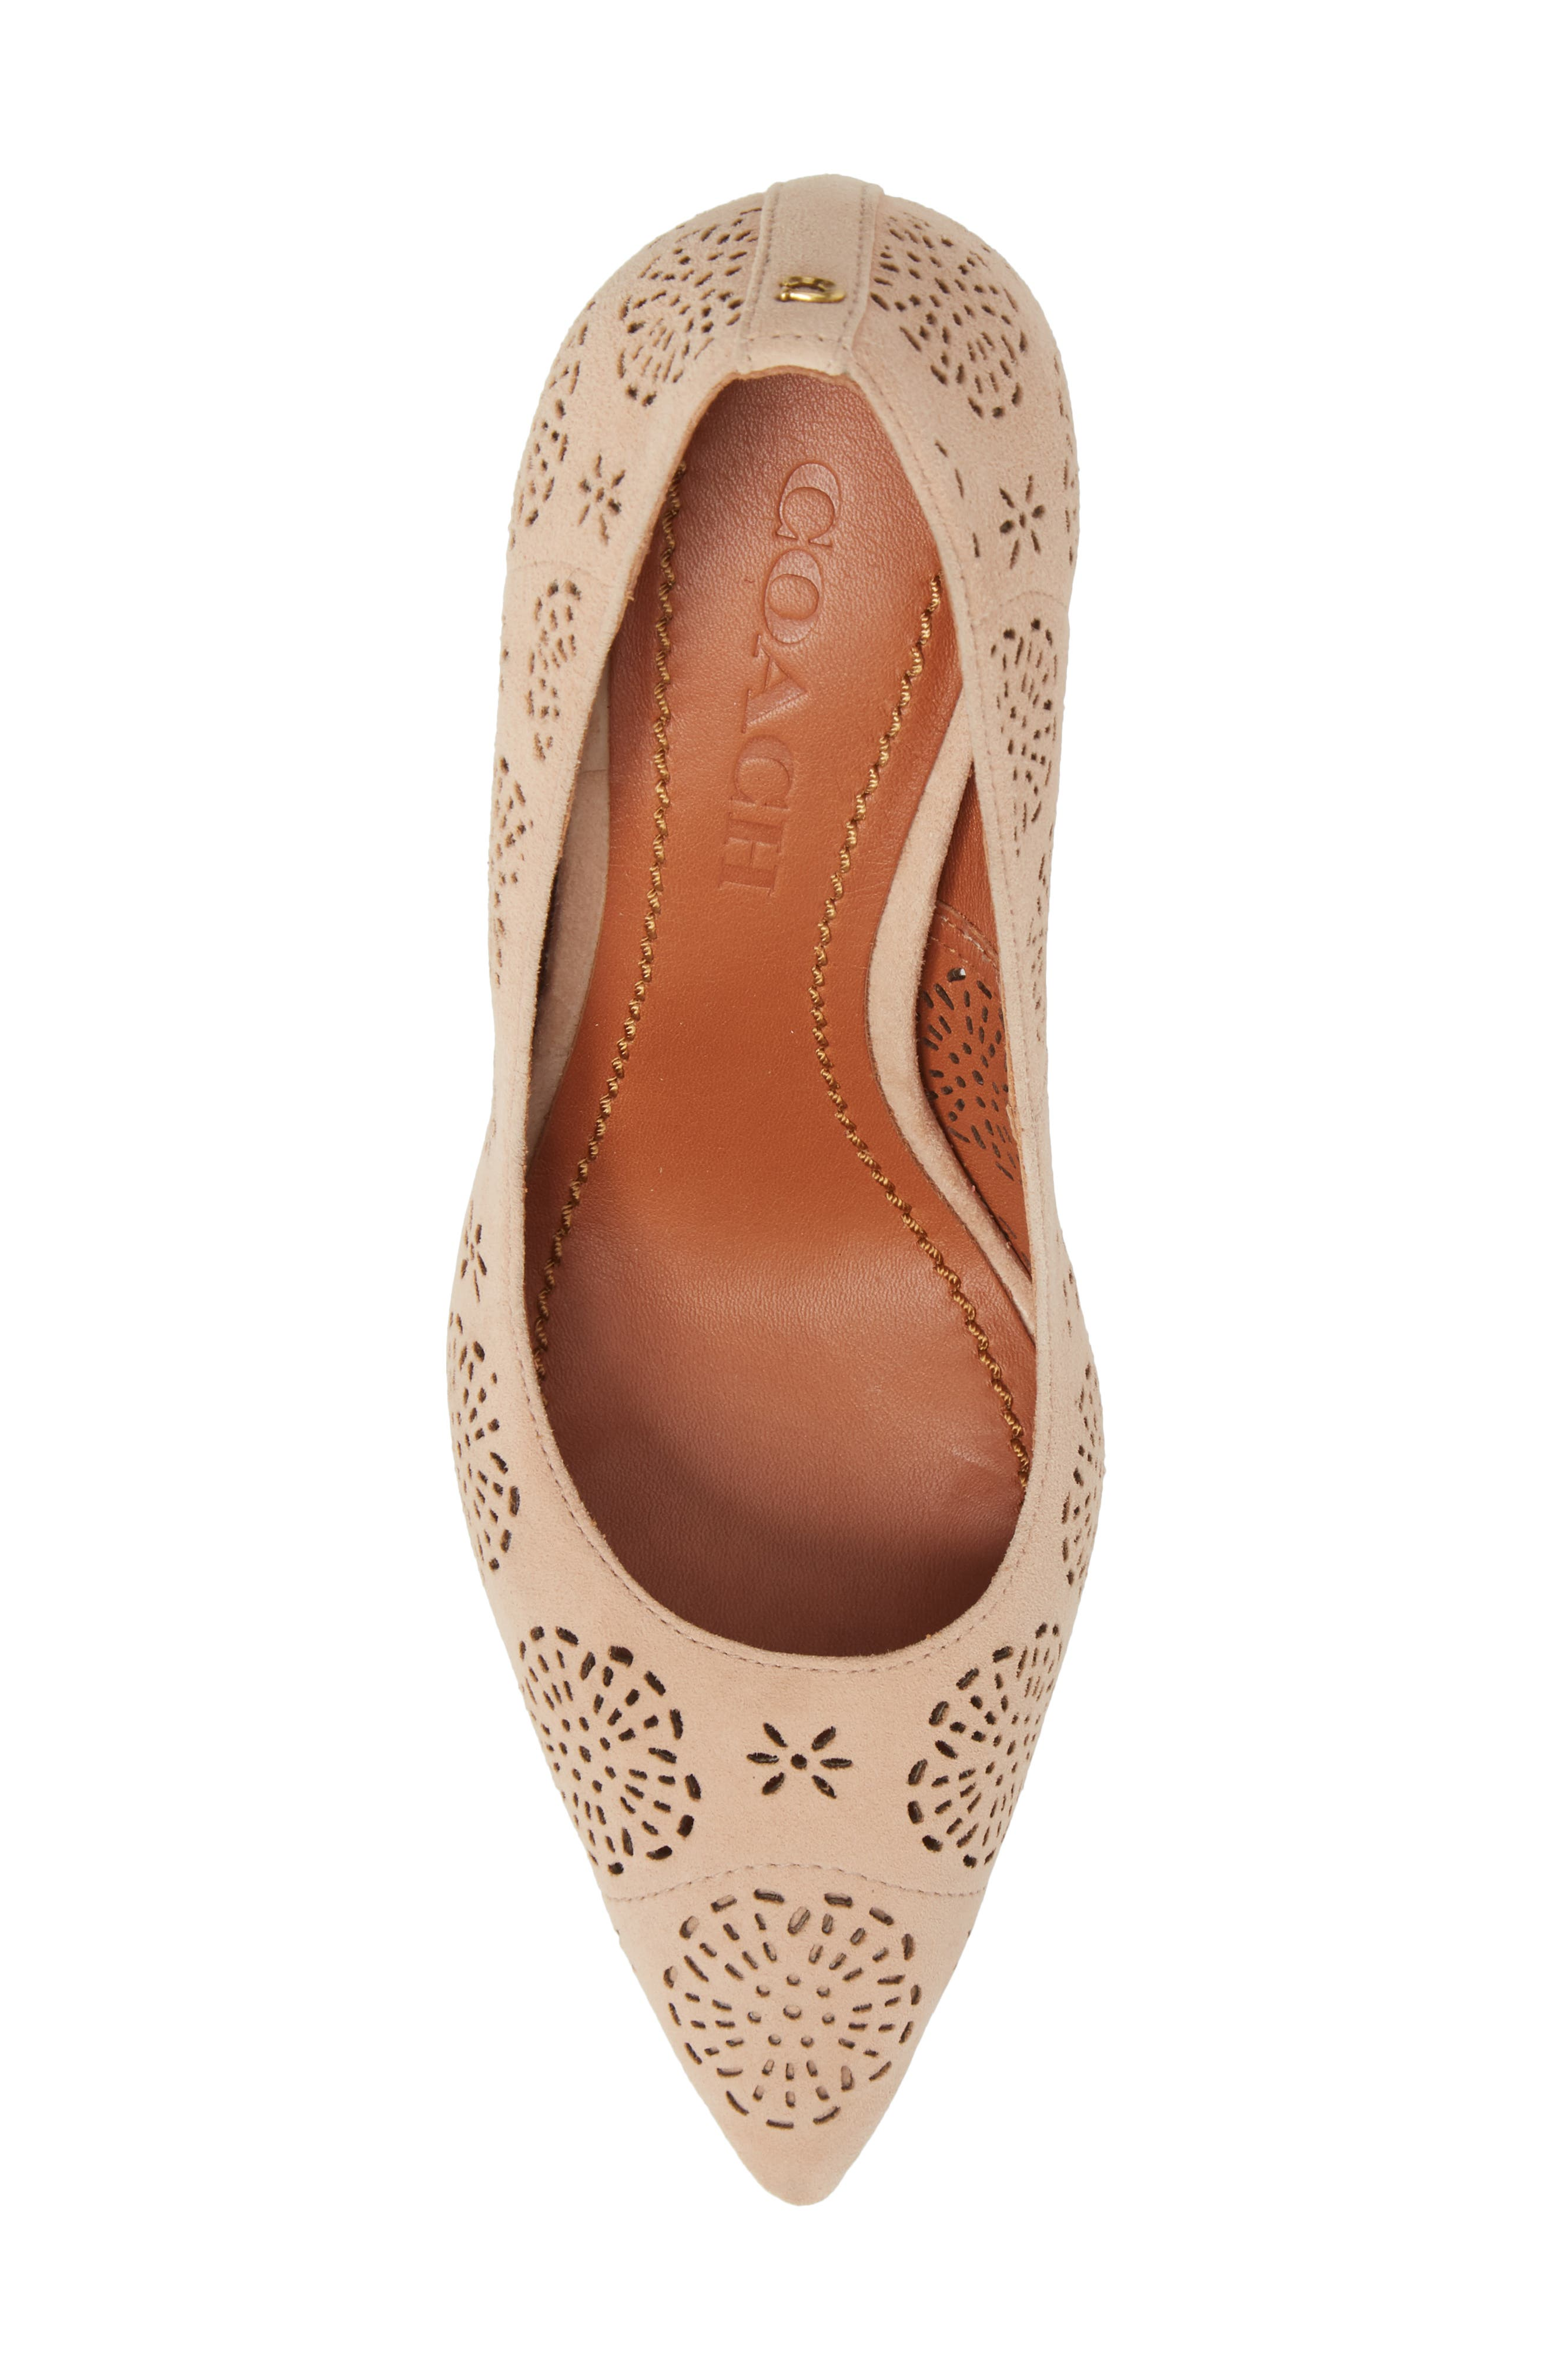 Waverly Tea Rose Perforated Pump,                             Alternate thumbnail 5, color,                             Beachwood Leather